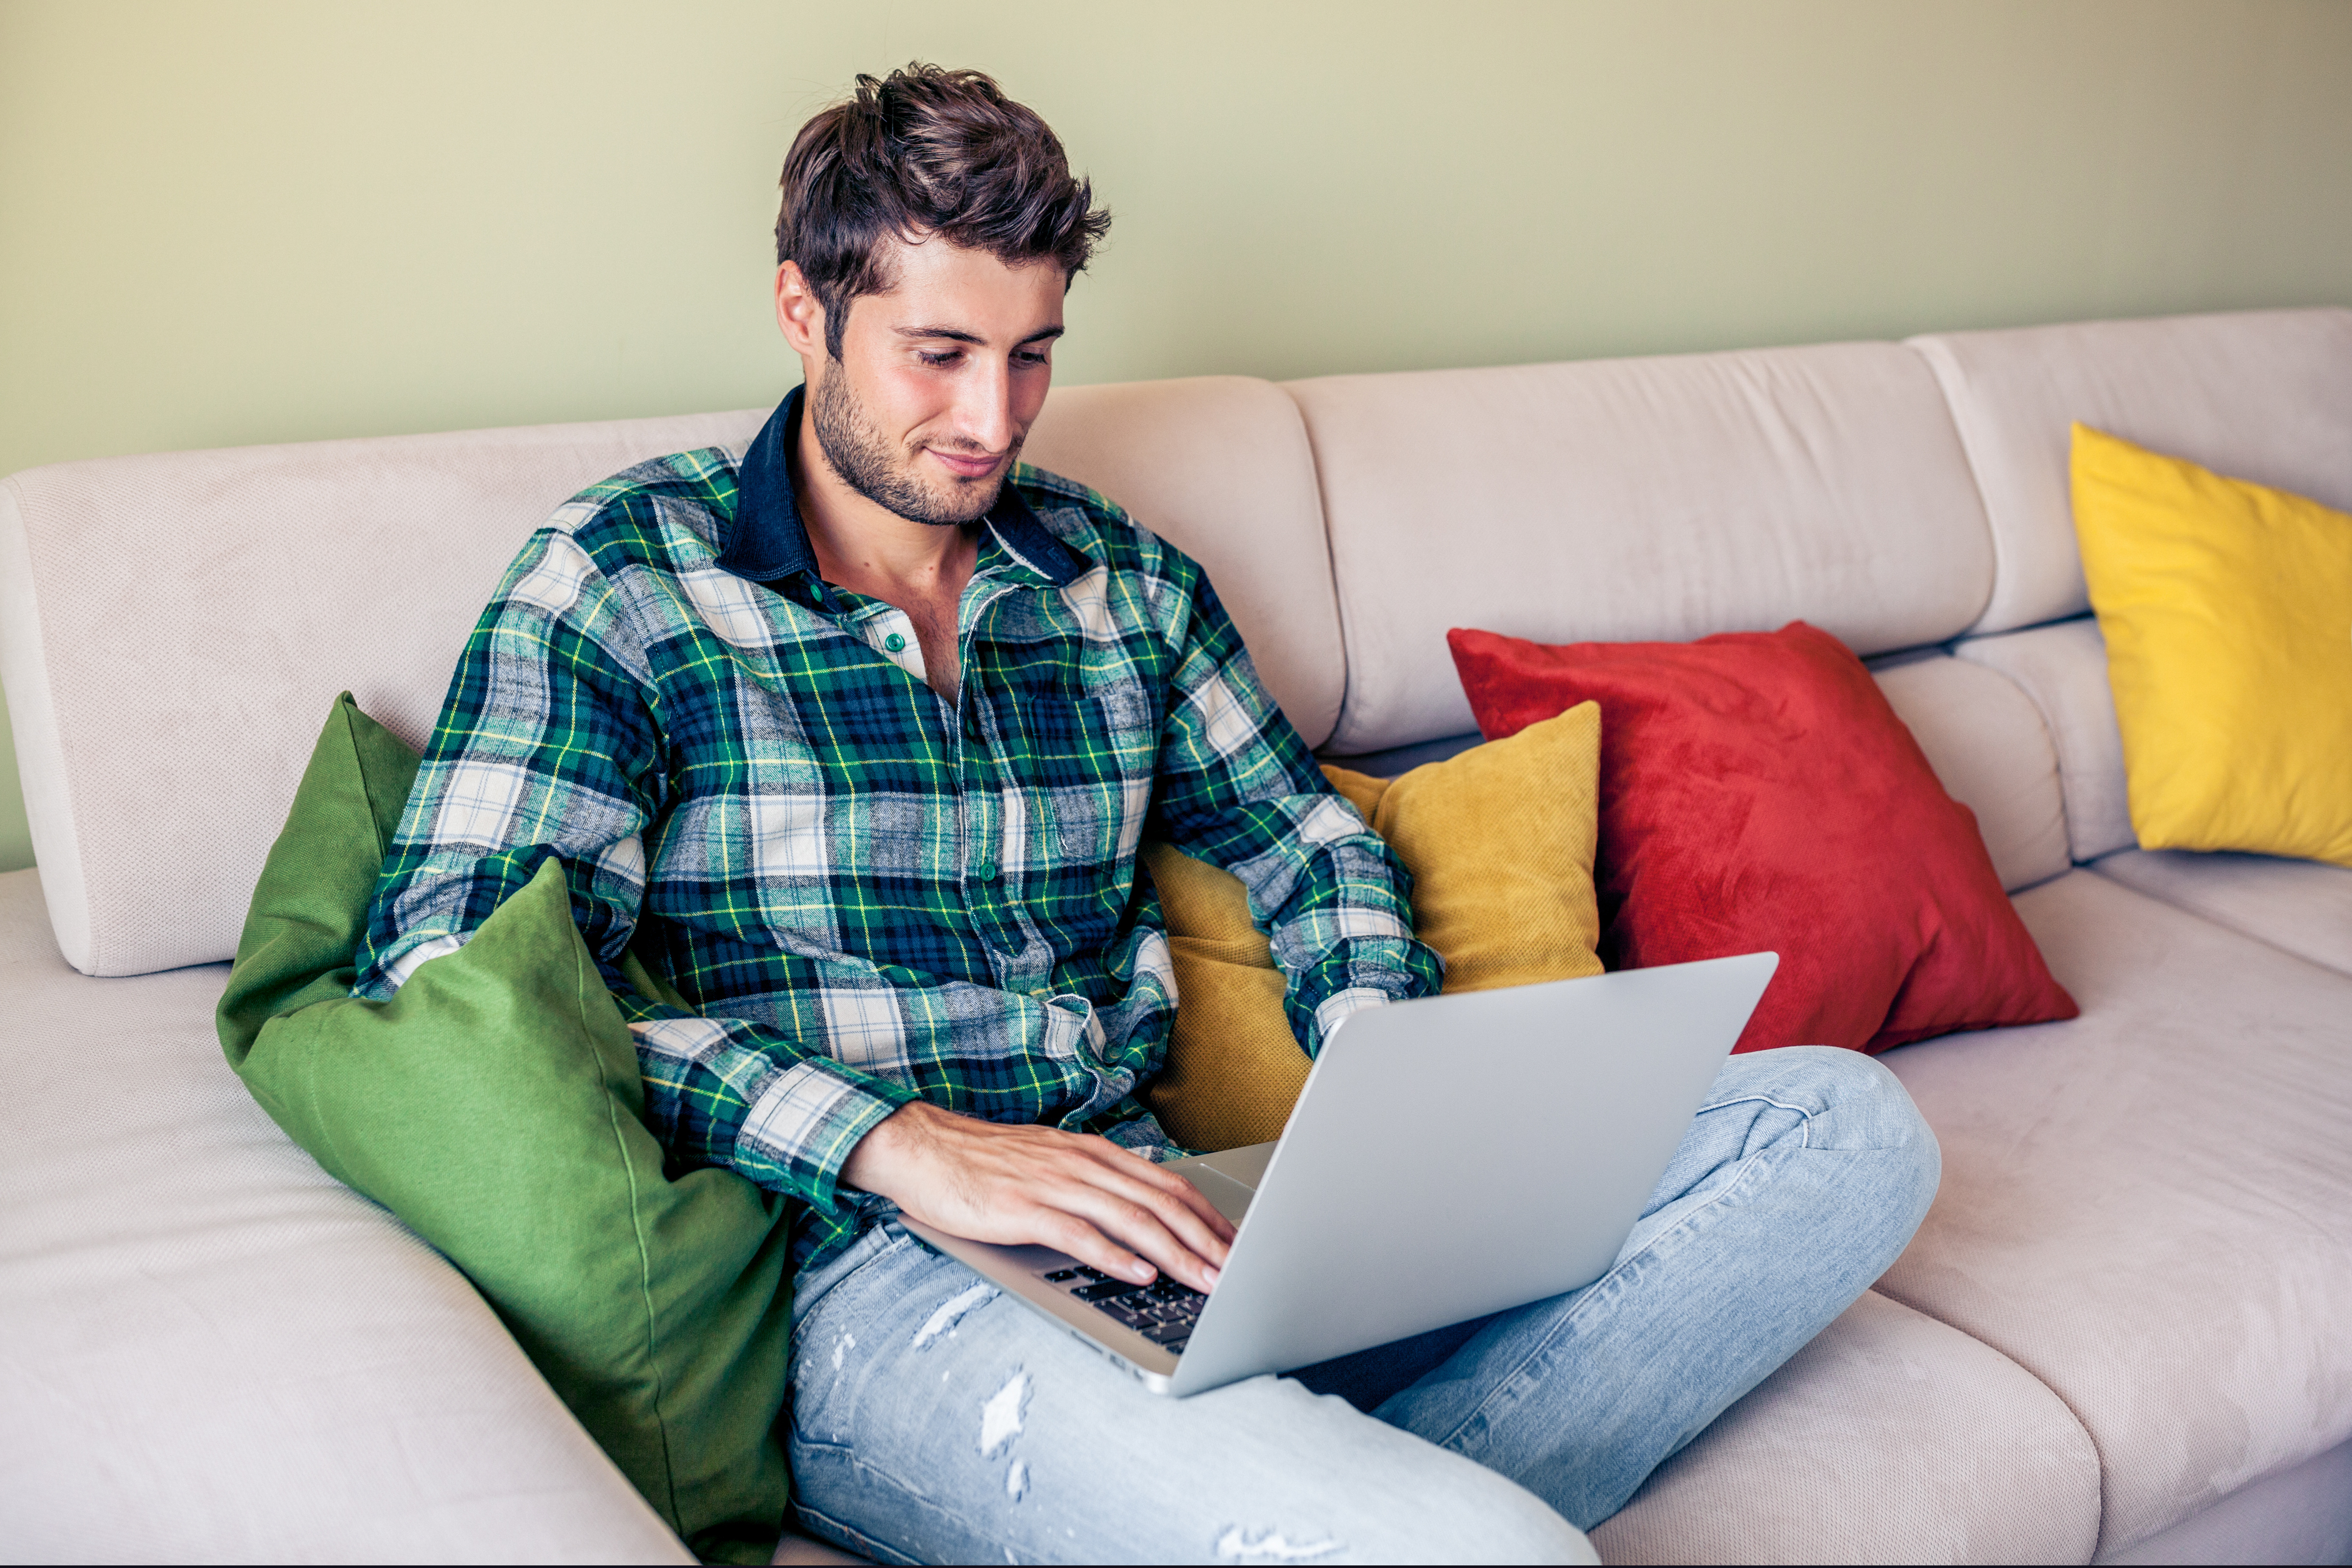 One in four people claim to work from their sofa when doing overtime in their homes